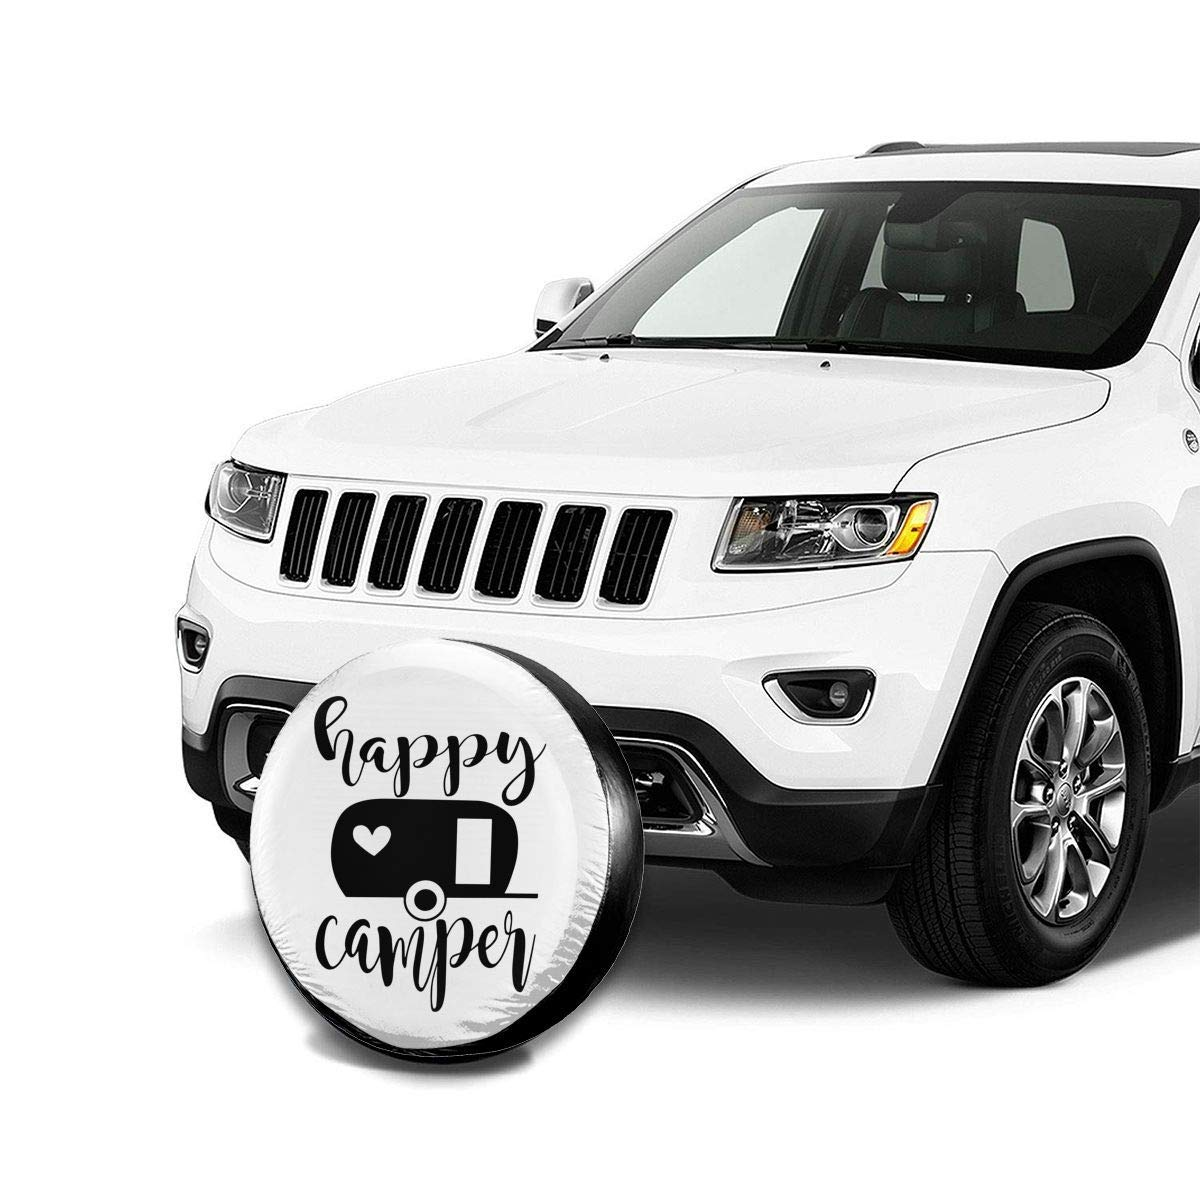 Happy Camper Vector Spare Tire Cover Dust-Proof Waterproof Wheel Covers Sunscreen Corrosion Protection for Trailer RV SUV Truck Camper Travel 14 15 16 17